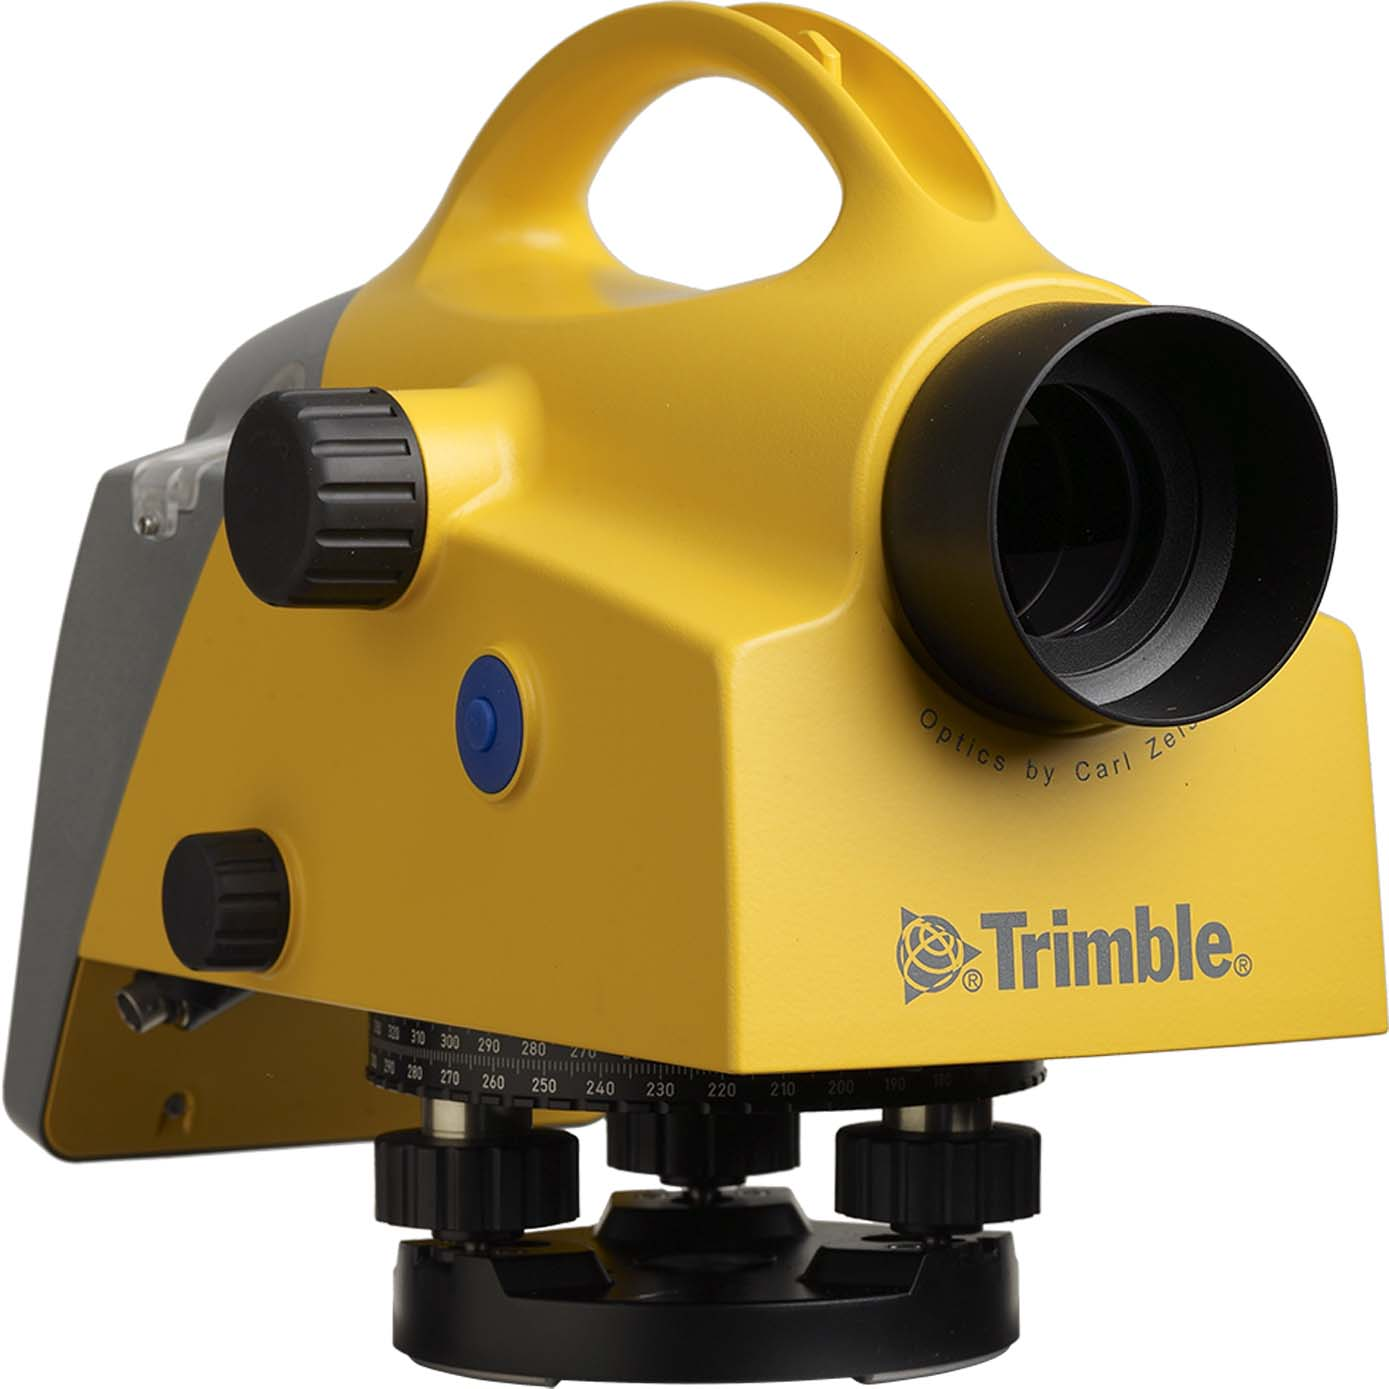 Trimble DiNi 0.3 от «ФокусГео». Фото N3